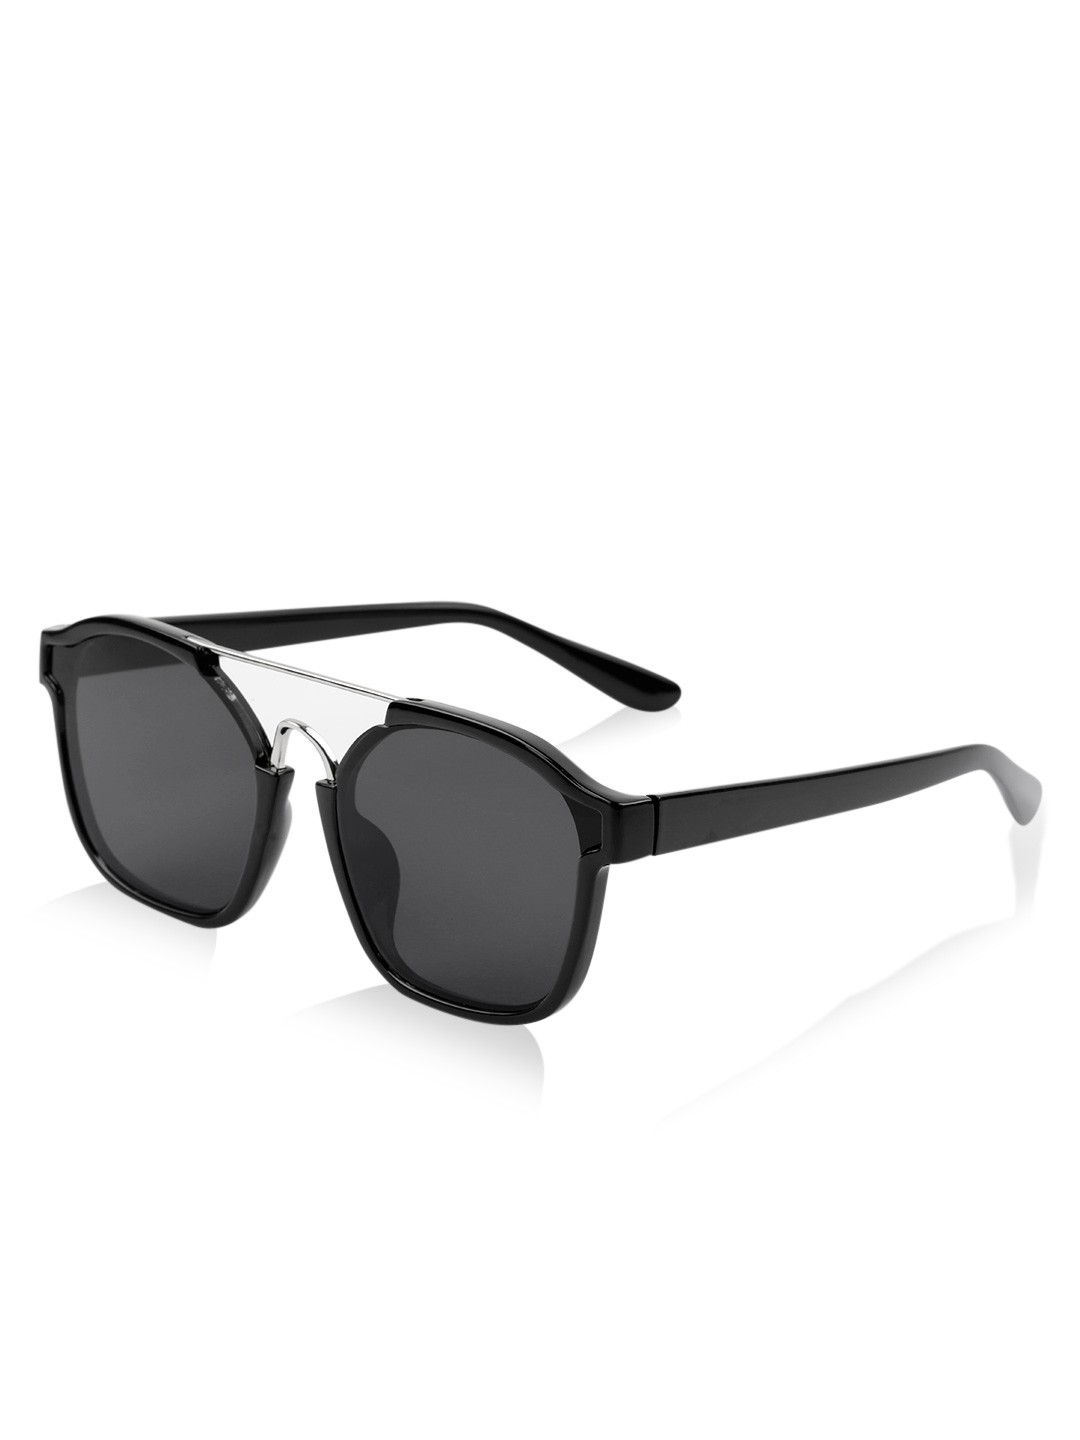 67b01398ec4e Black Visor Flip Out Frame Sunglasses